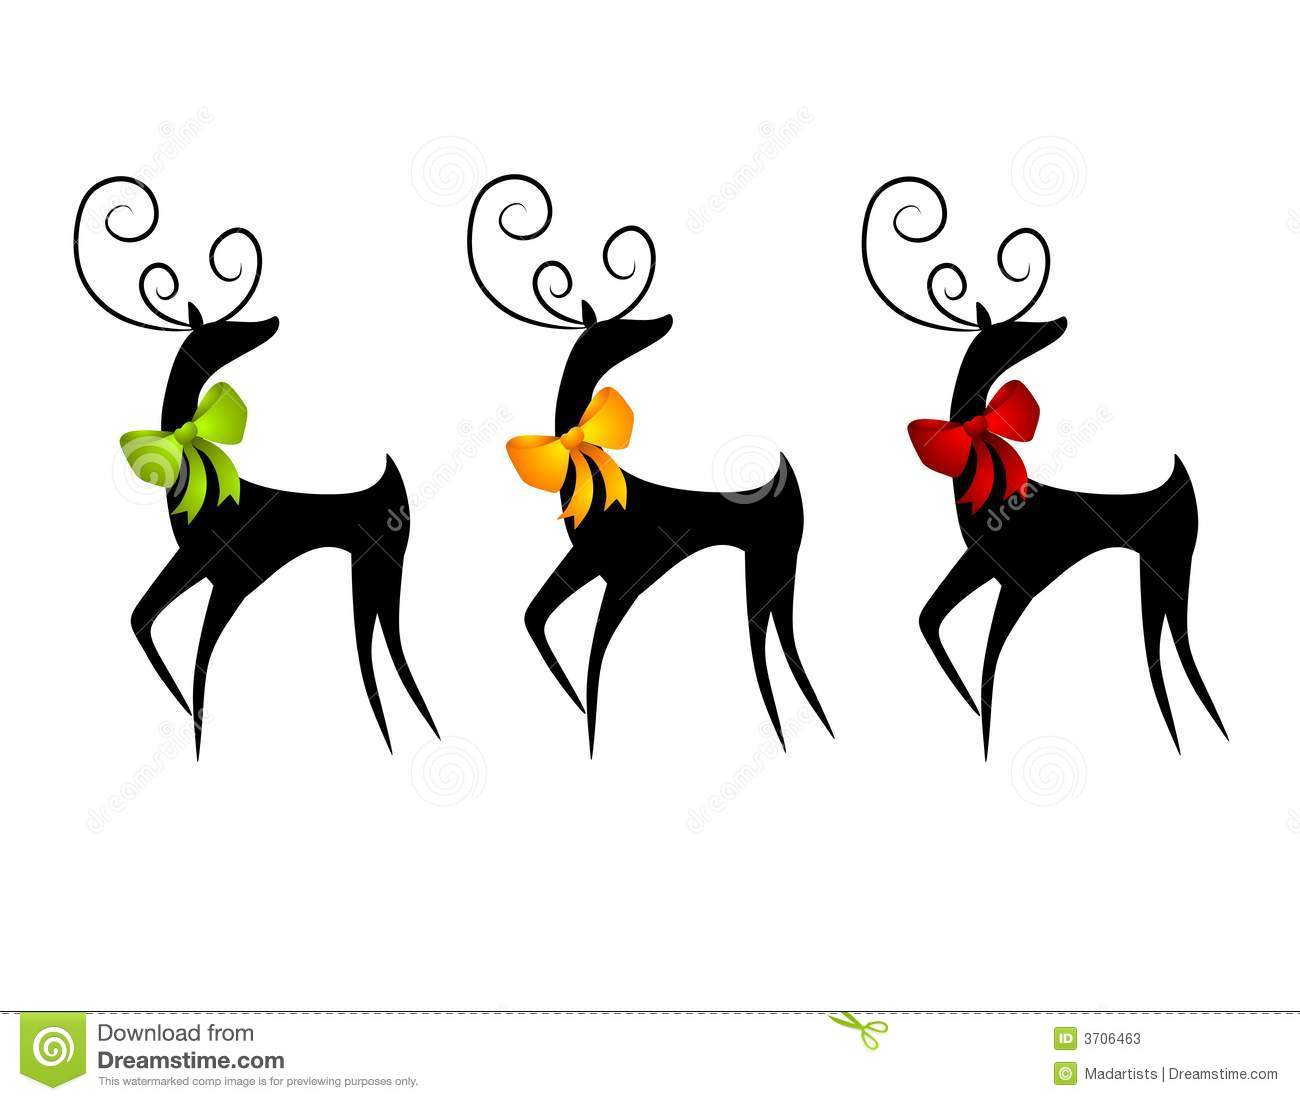 Clip Art Illustration Of Three Deer Or Reindeer In Black Silhouette